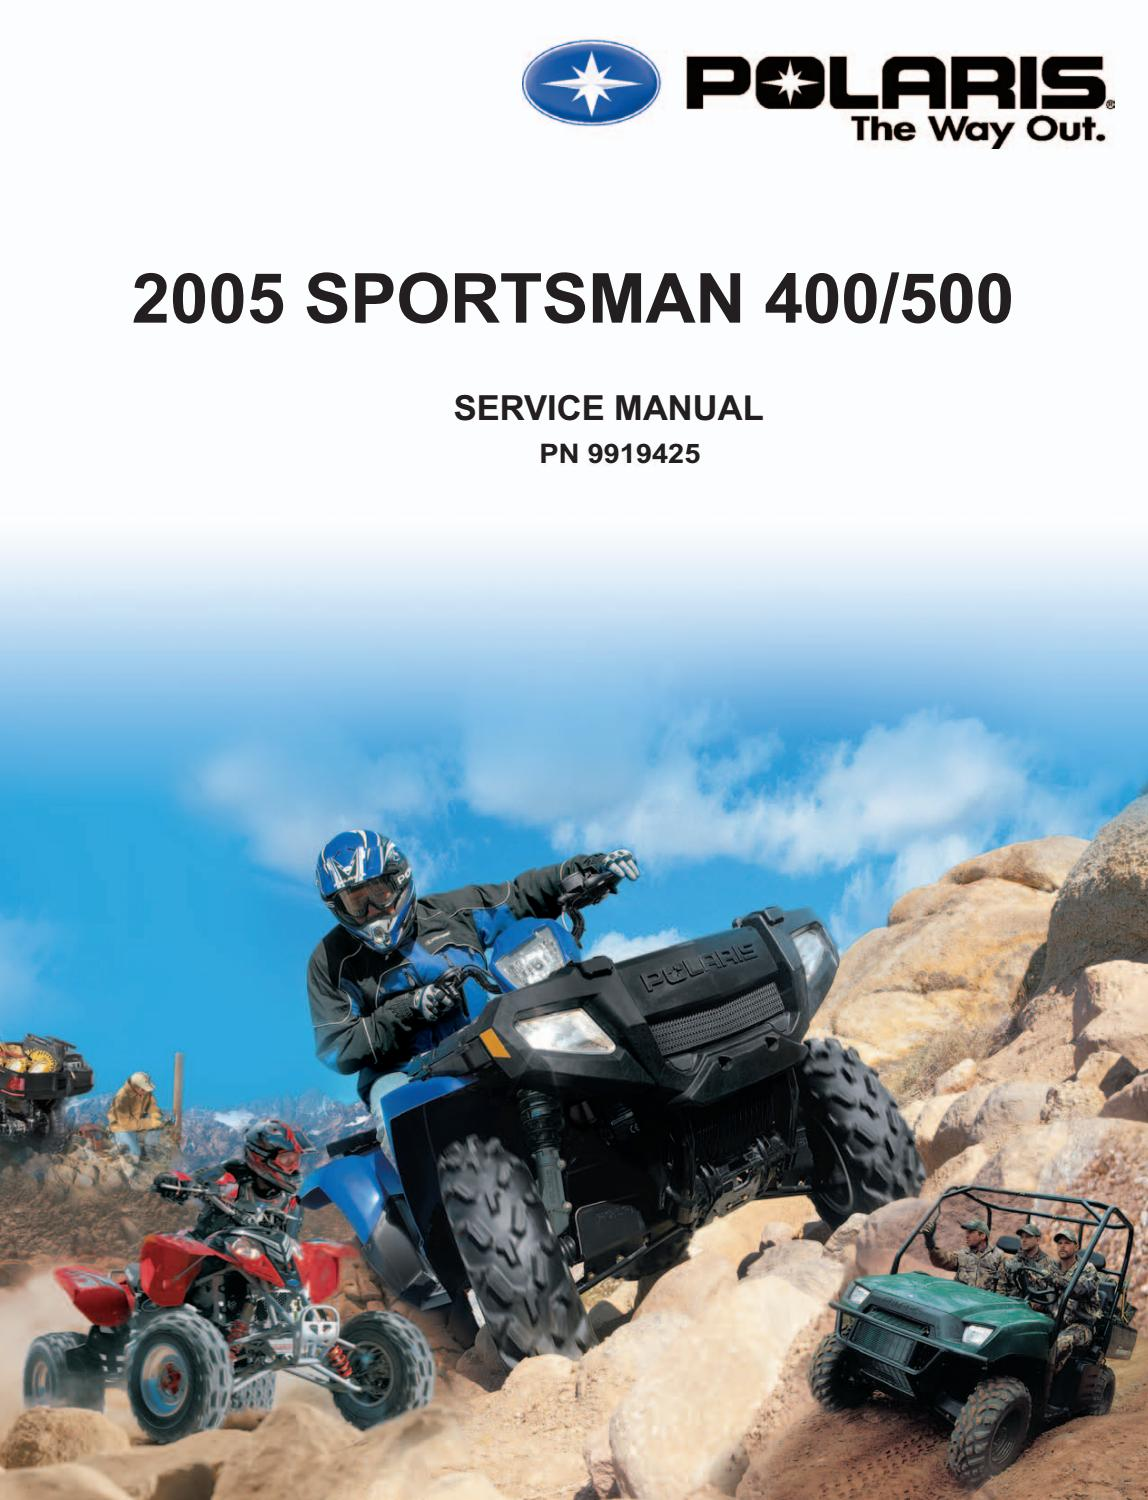 Polaris Service Manual Pdf